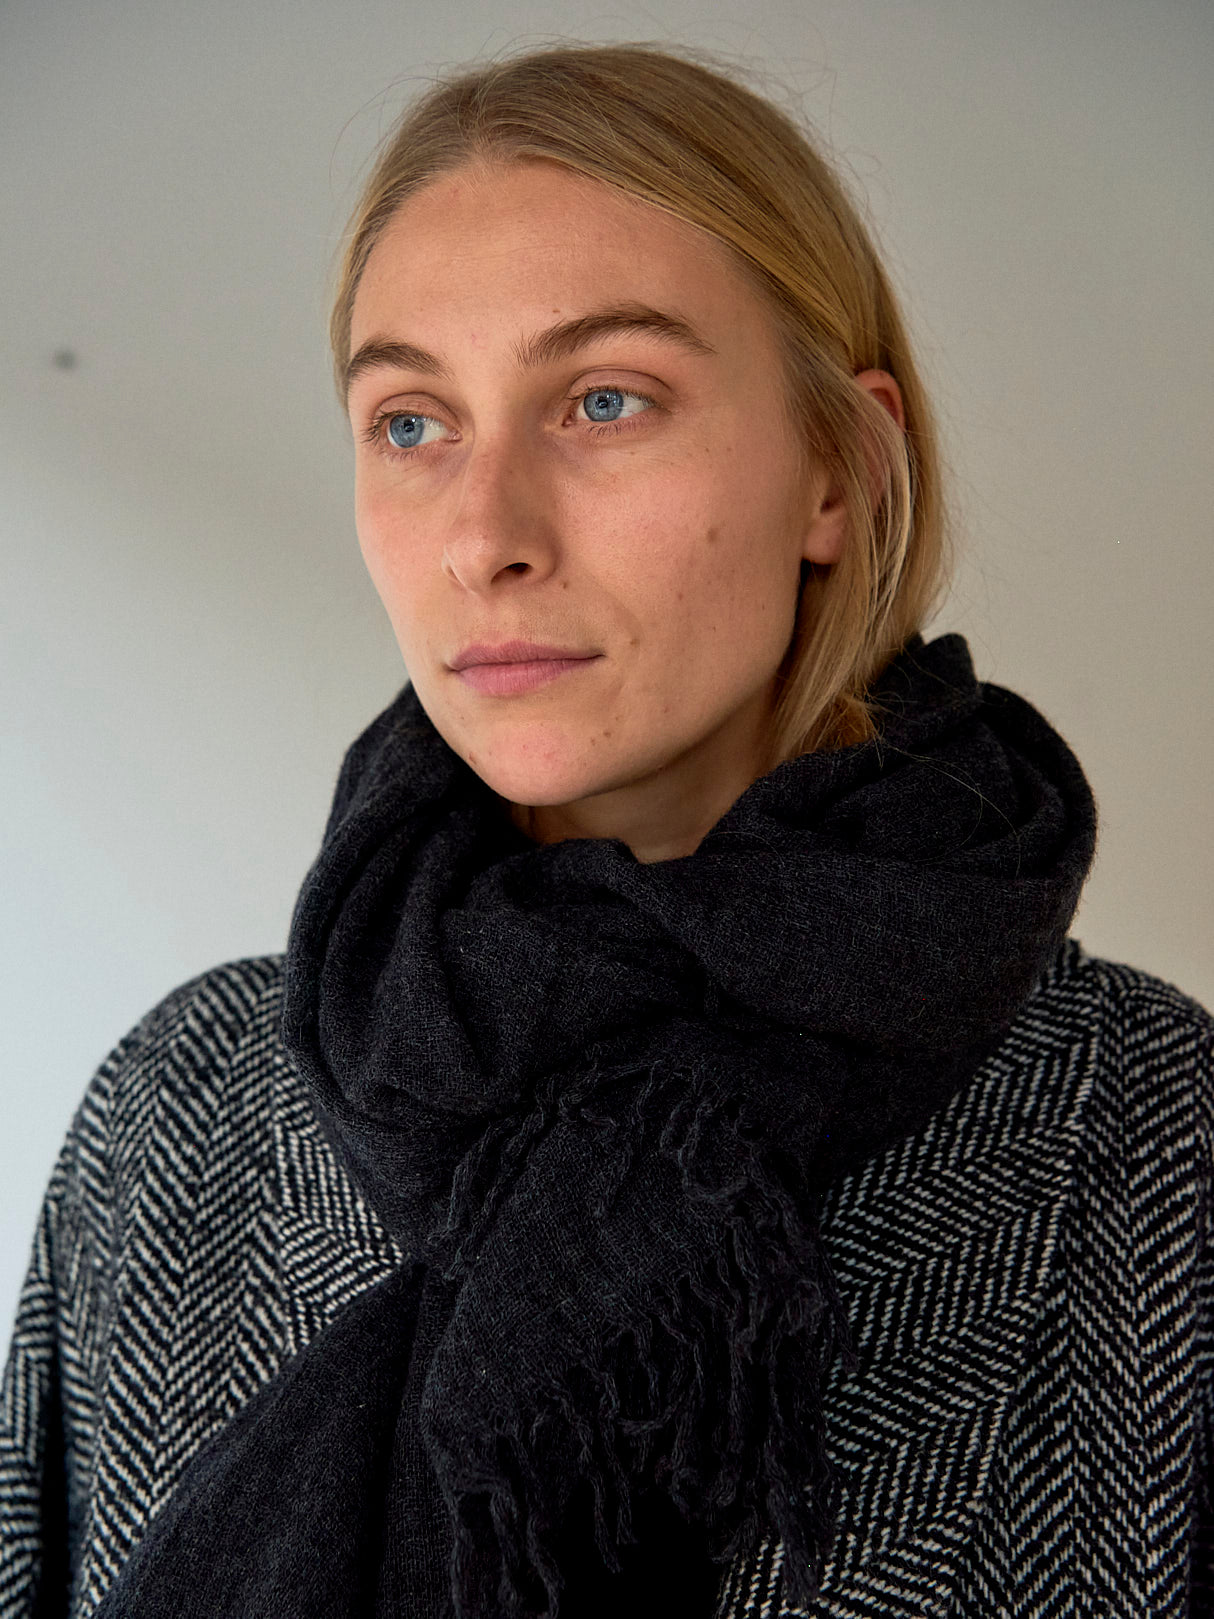 ee12 Cashmere Scarf